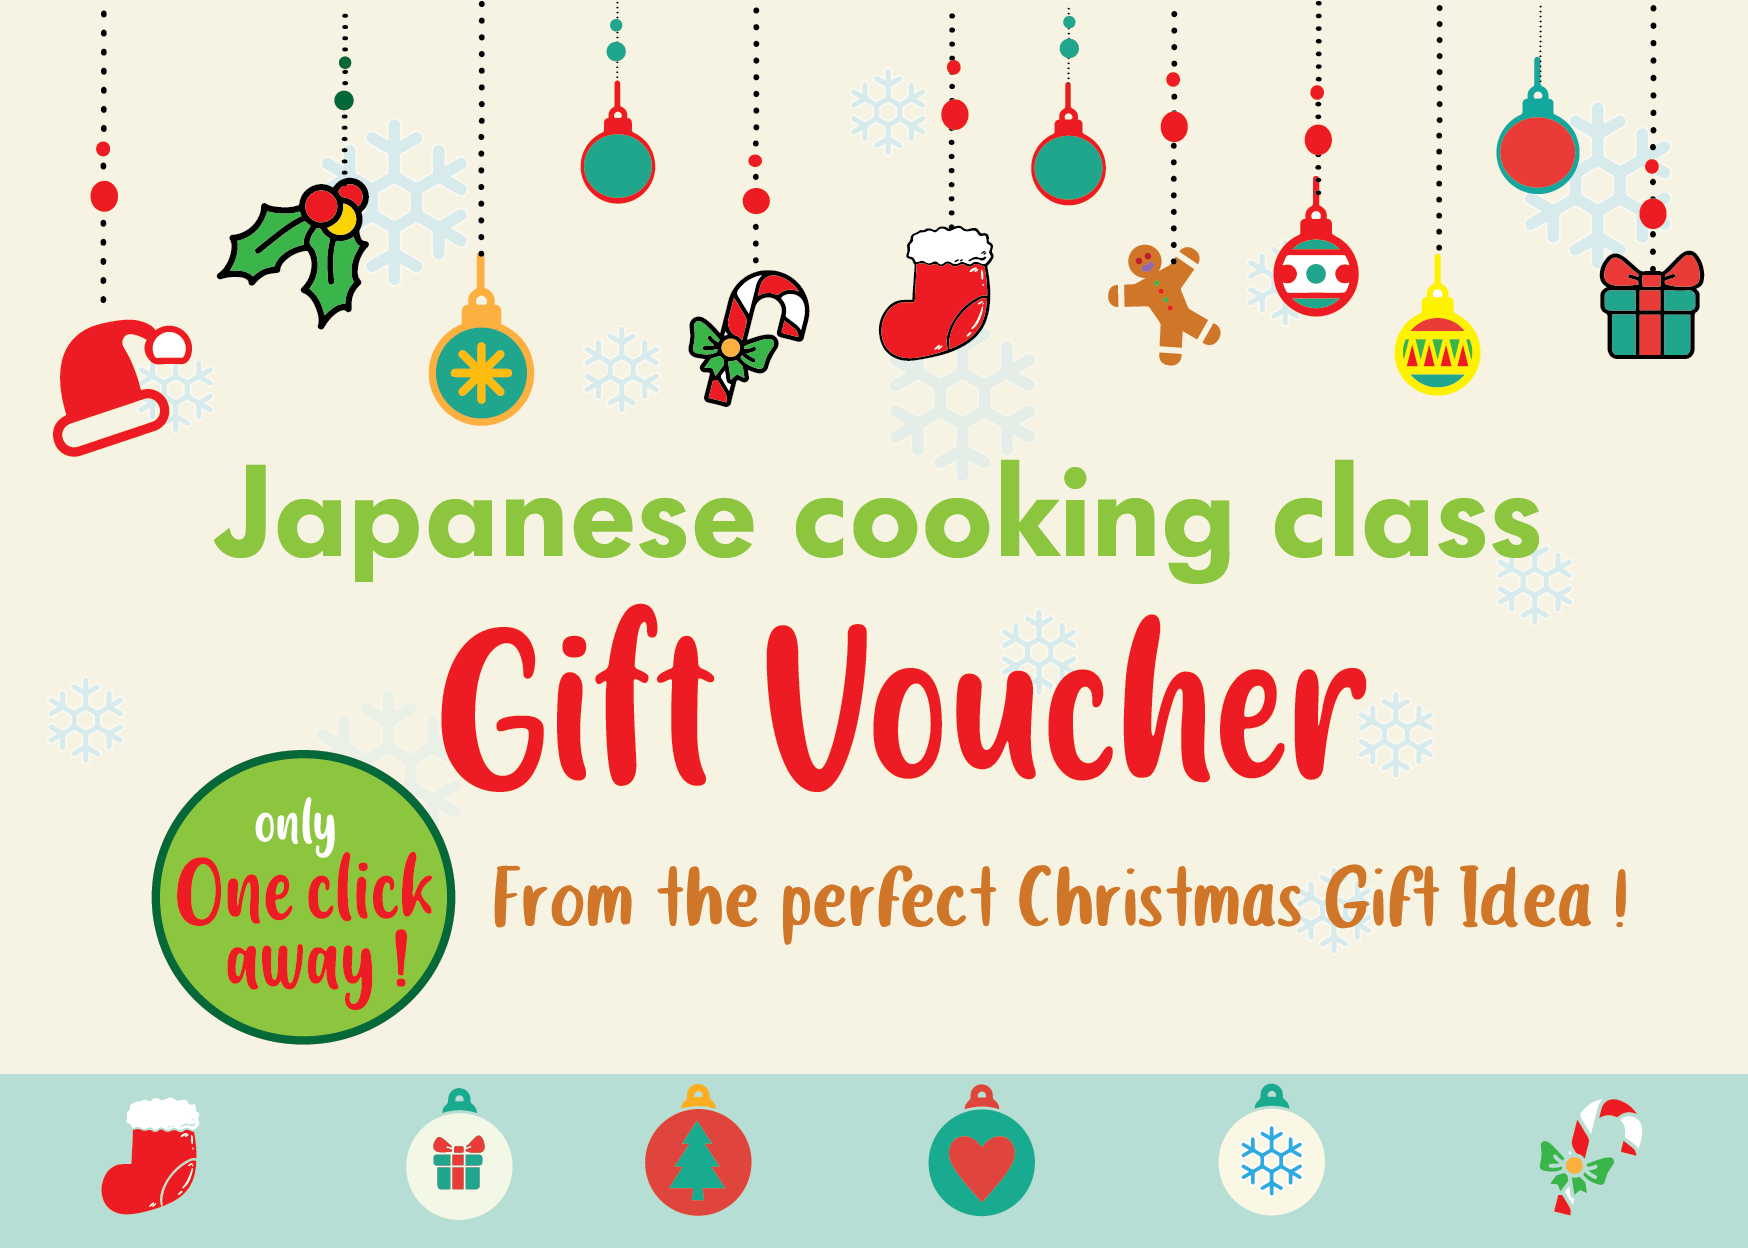 An Exclusive Offer Just For You This Christmas! | Cooking with Yoshiko